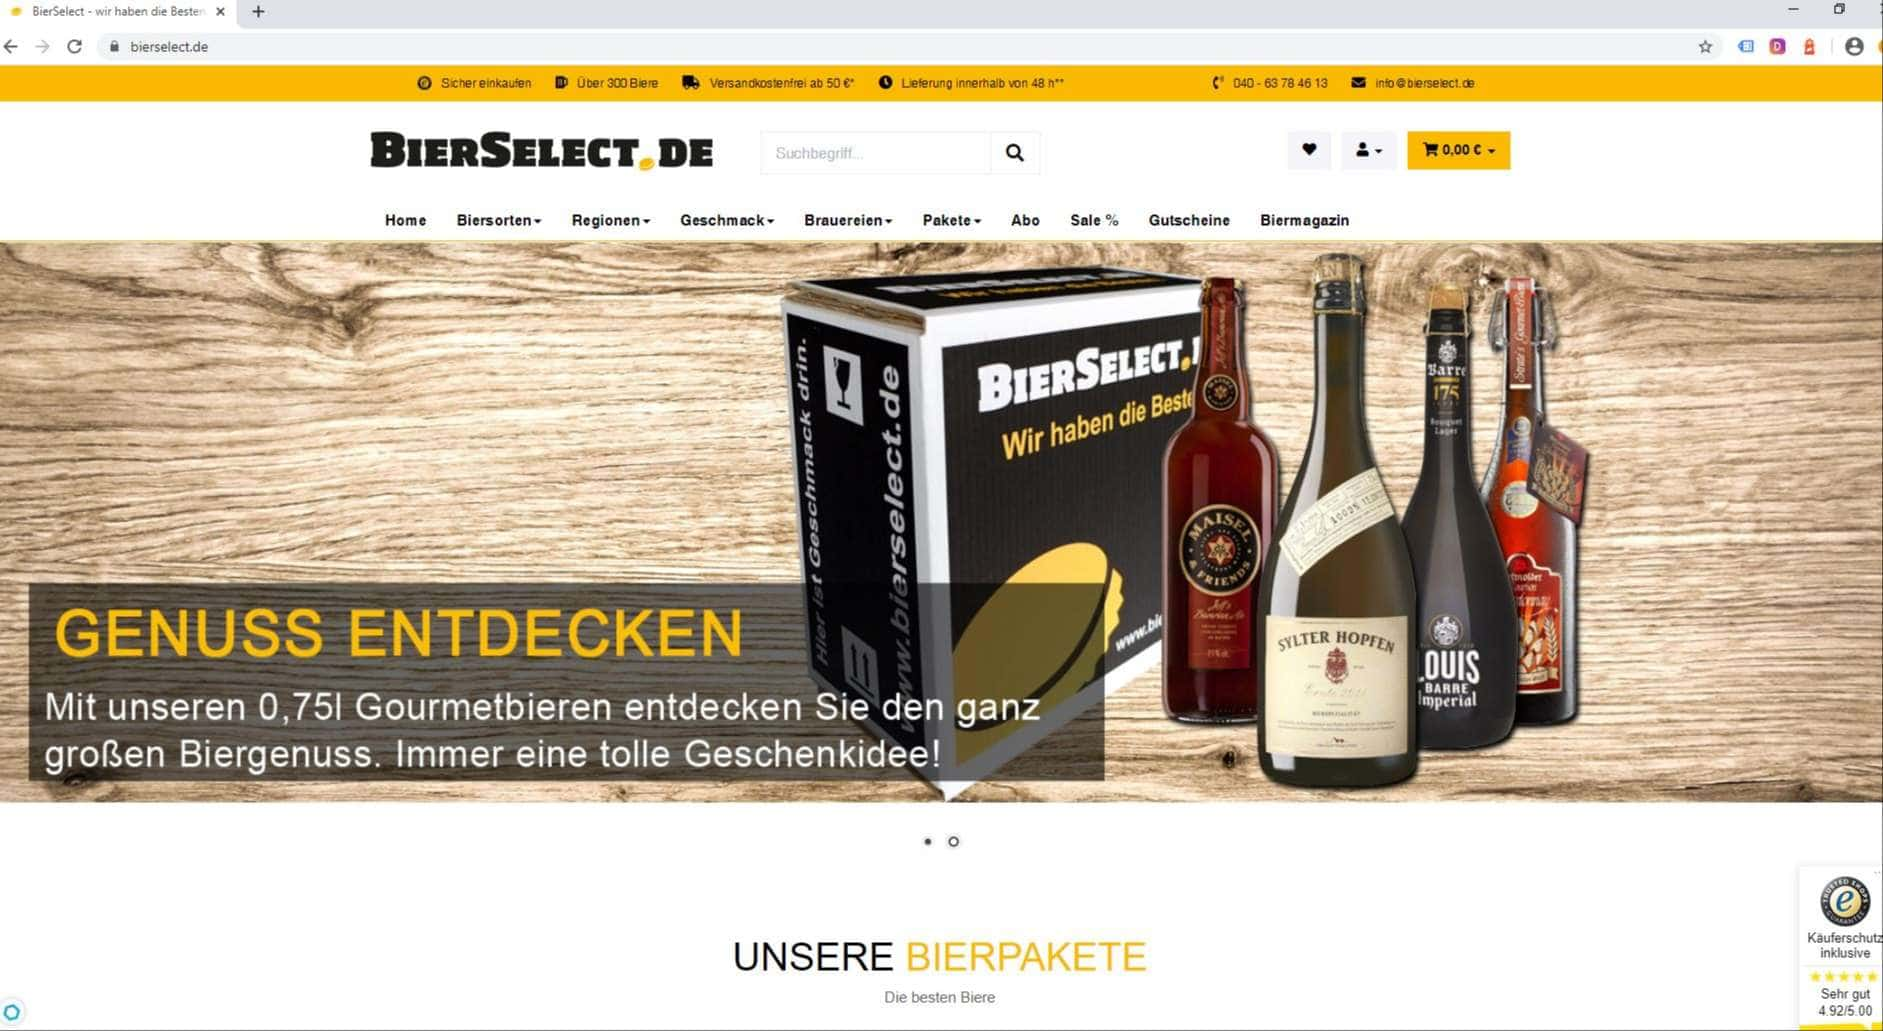 Bierselect